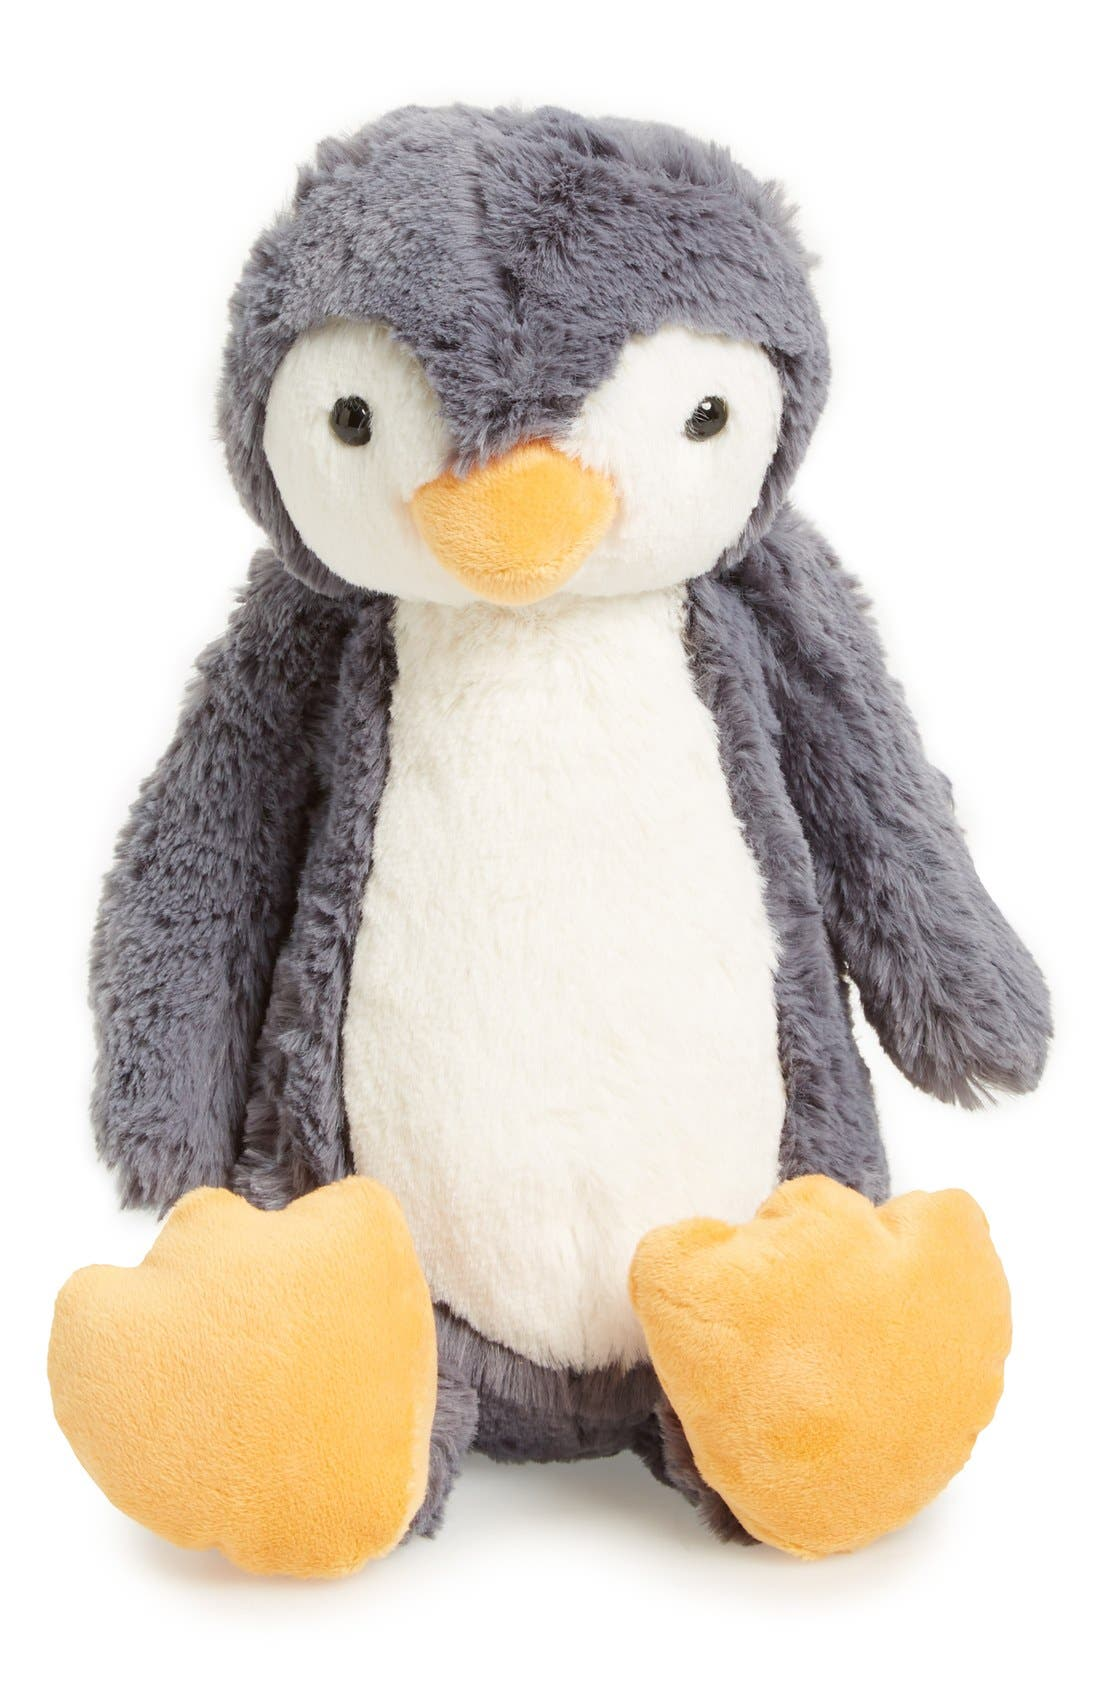 Main Image - Jellycat Medium Bashful Penguin Stuffed Animal